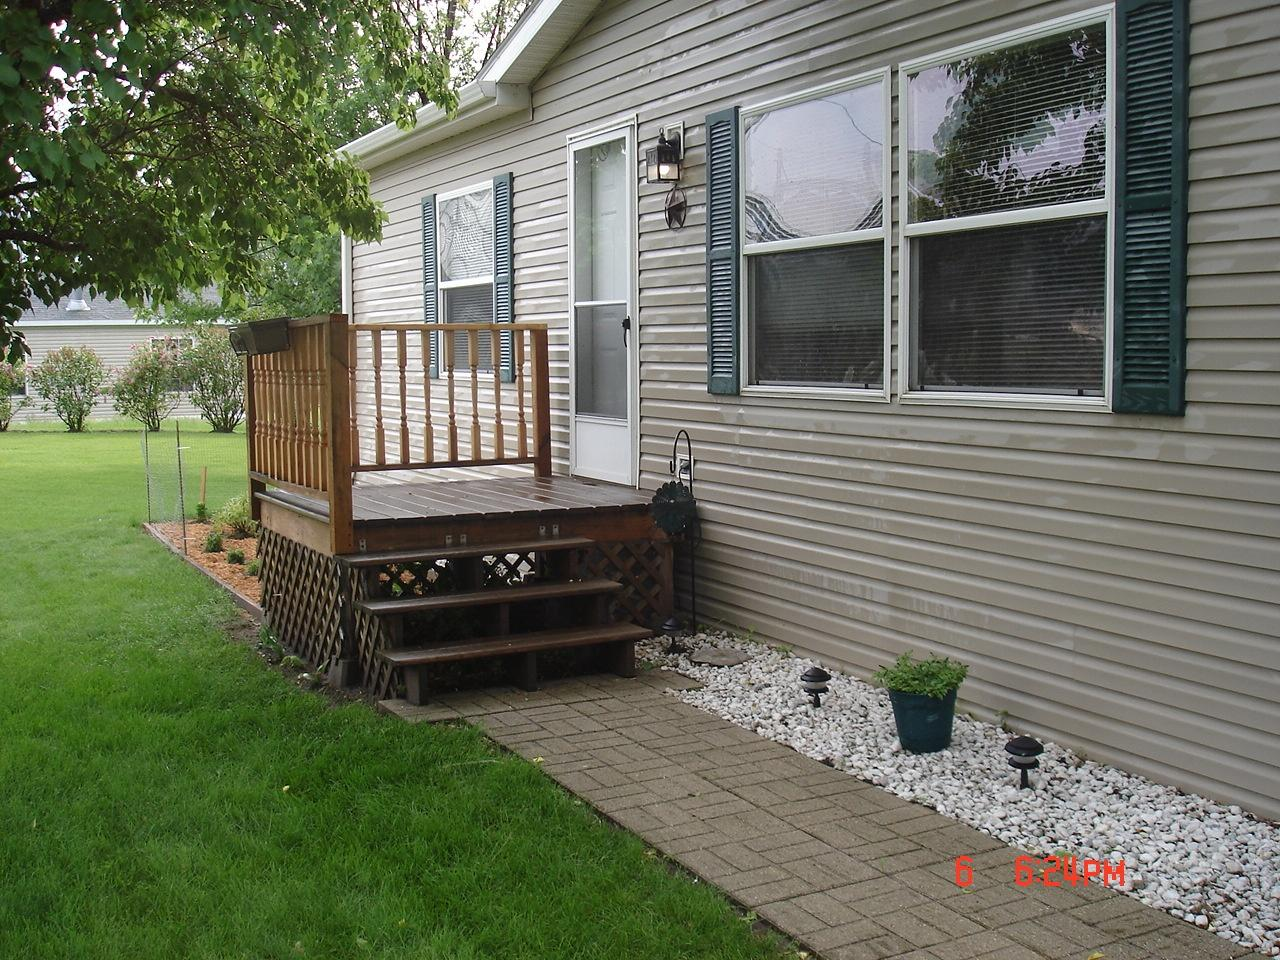 North dakota richland county walcott 58077 - Home For Sale By Owner